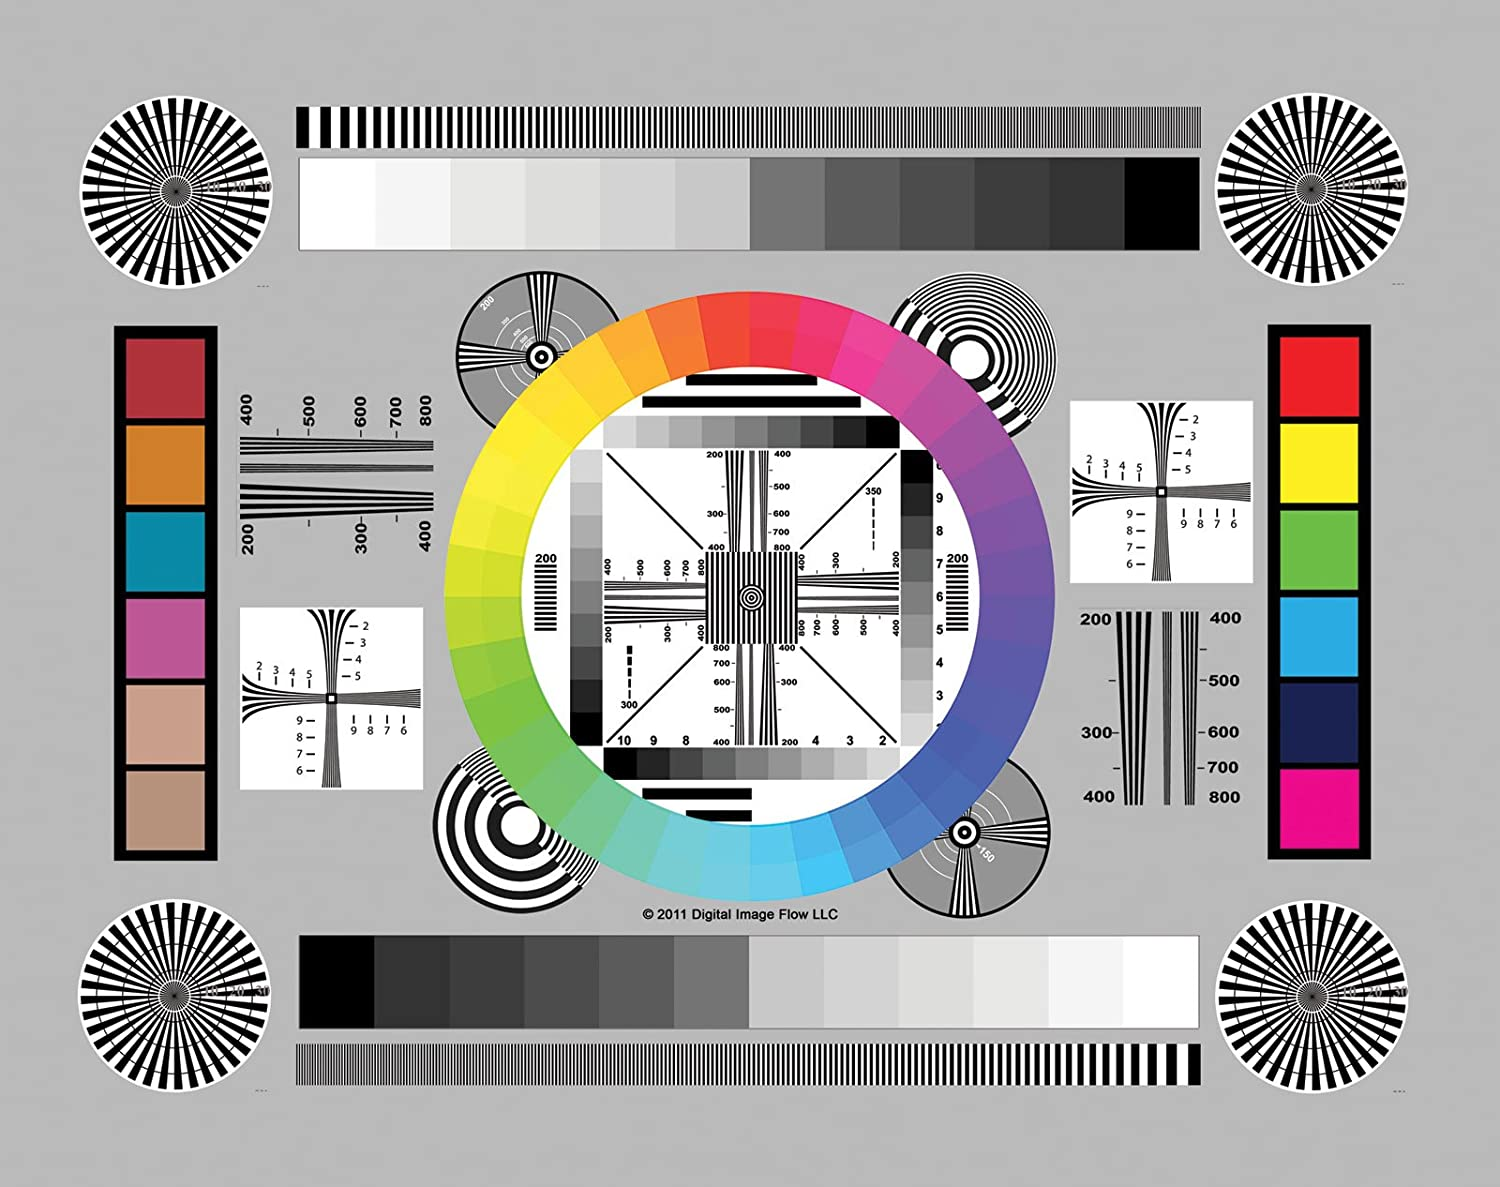 """DGK Color Tools DGK-CSD Set of 3 High Resolution 8"""" by 11"""" Chrome SD Professional Lens Test Chart for Lens Testing - Calibration - Resolution and Color Calibration for Digital Photo and Video"""